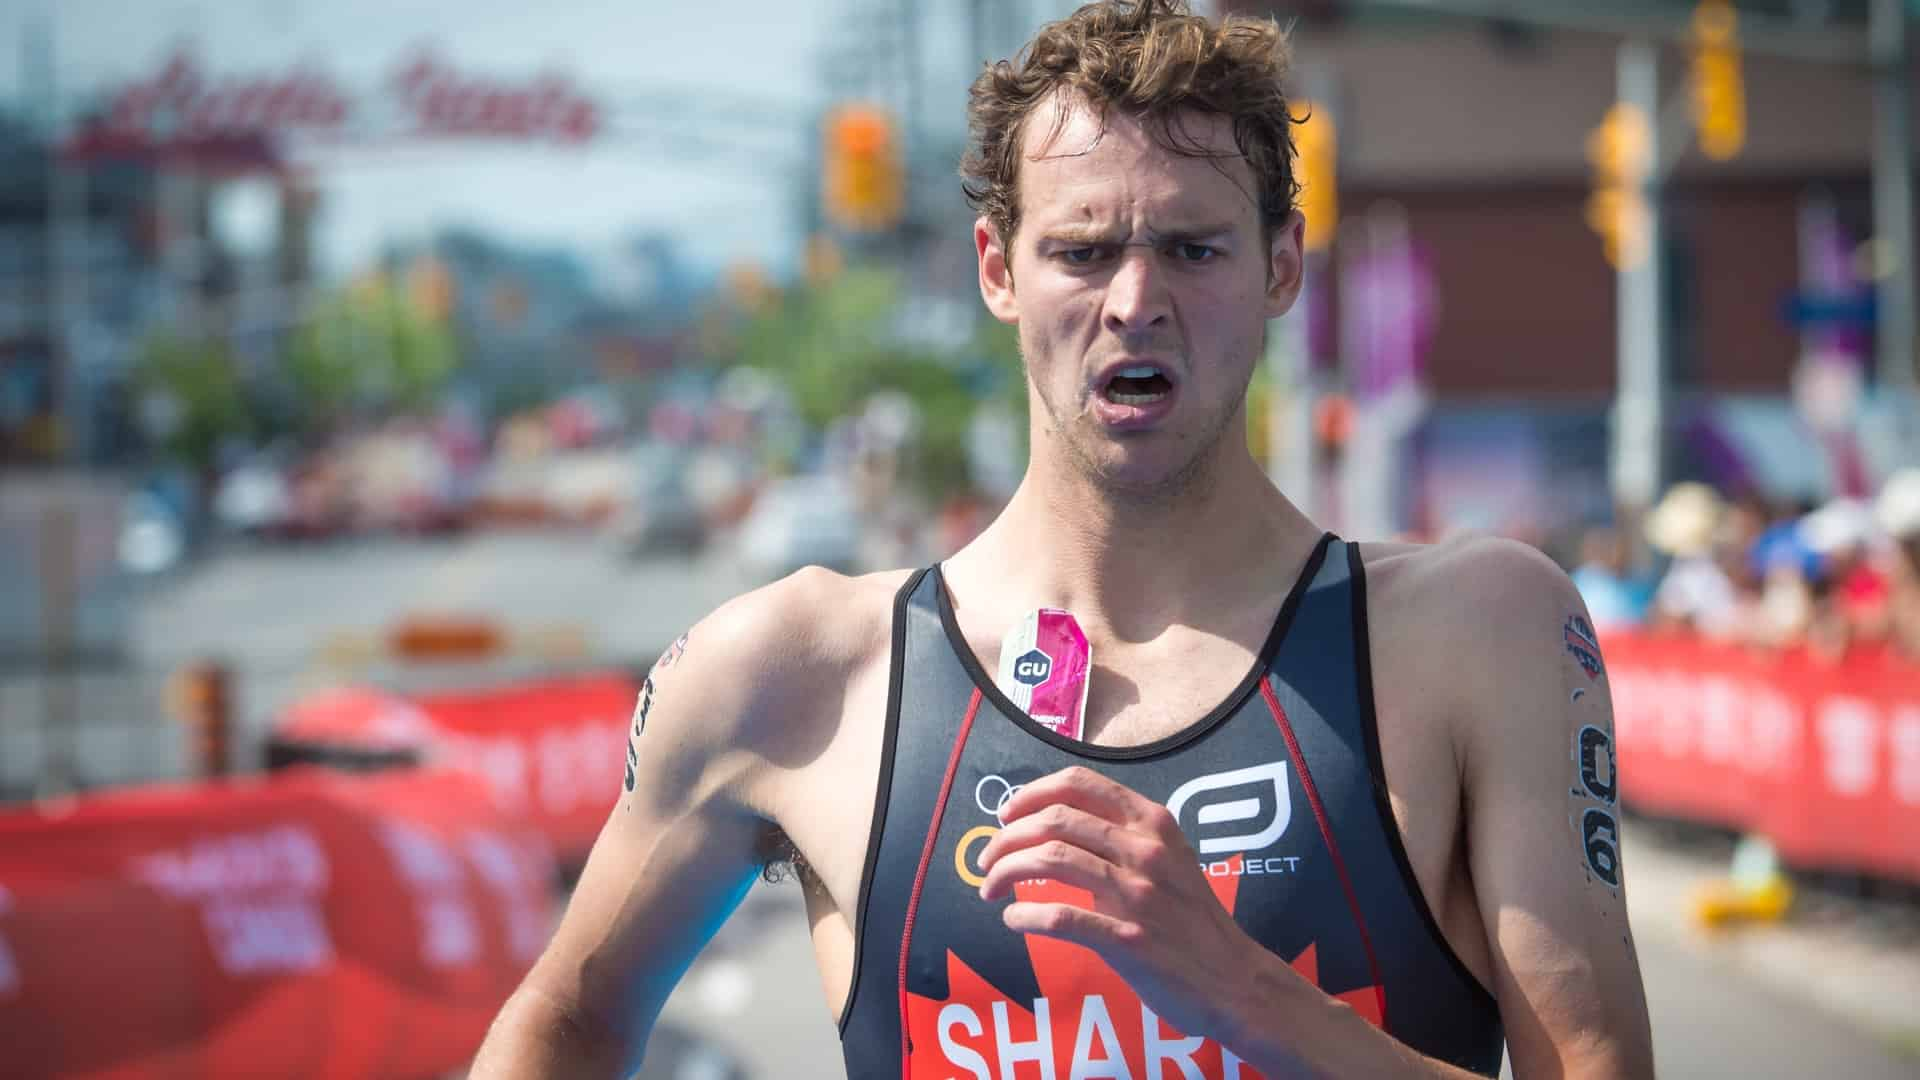 The USAT Tri for Real #2 Olympic Distance Triathlon &  USAT DU for REAL Duathlon